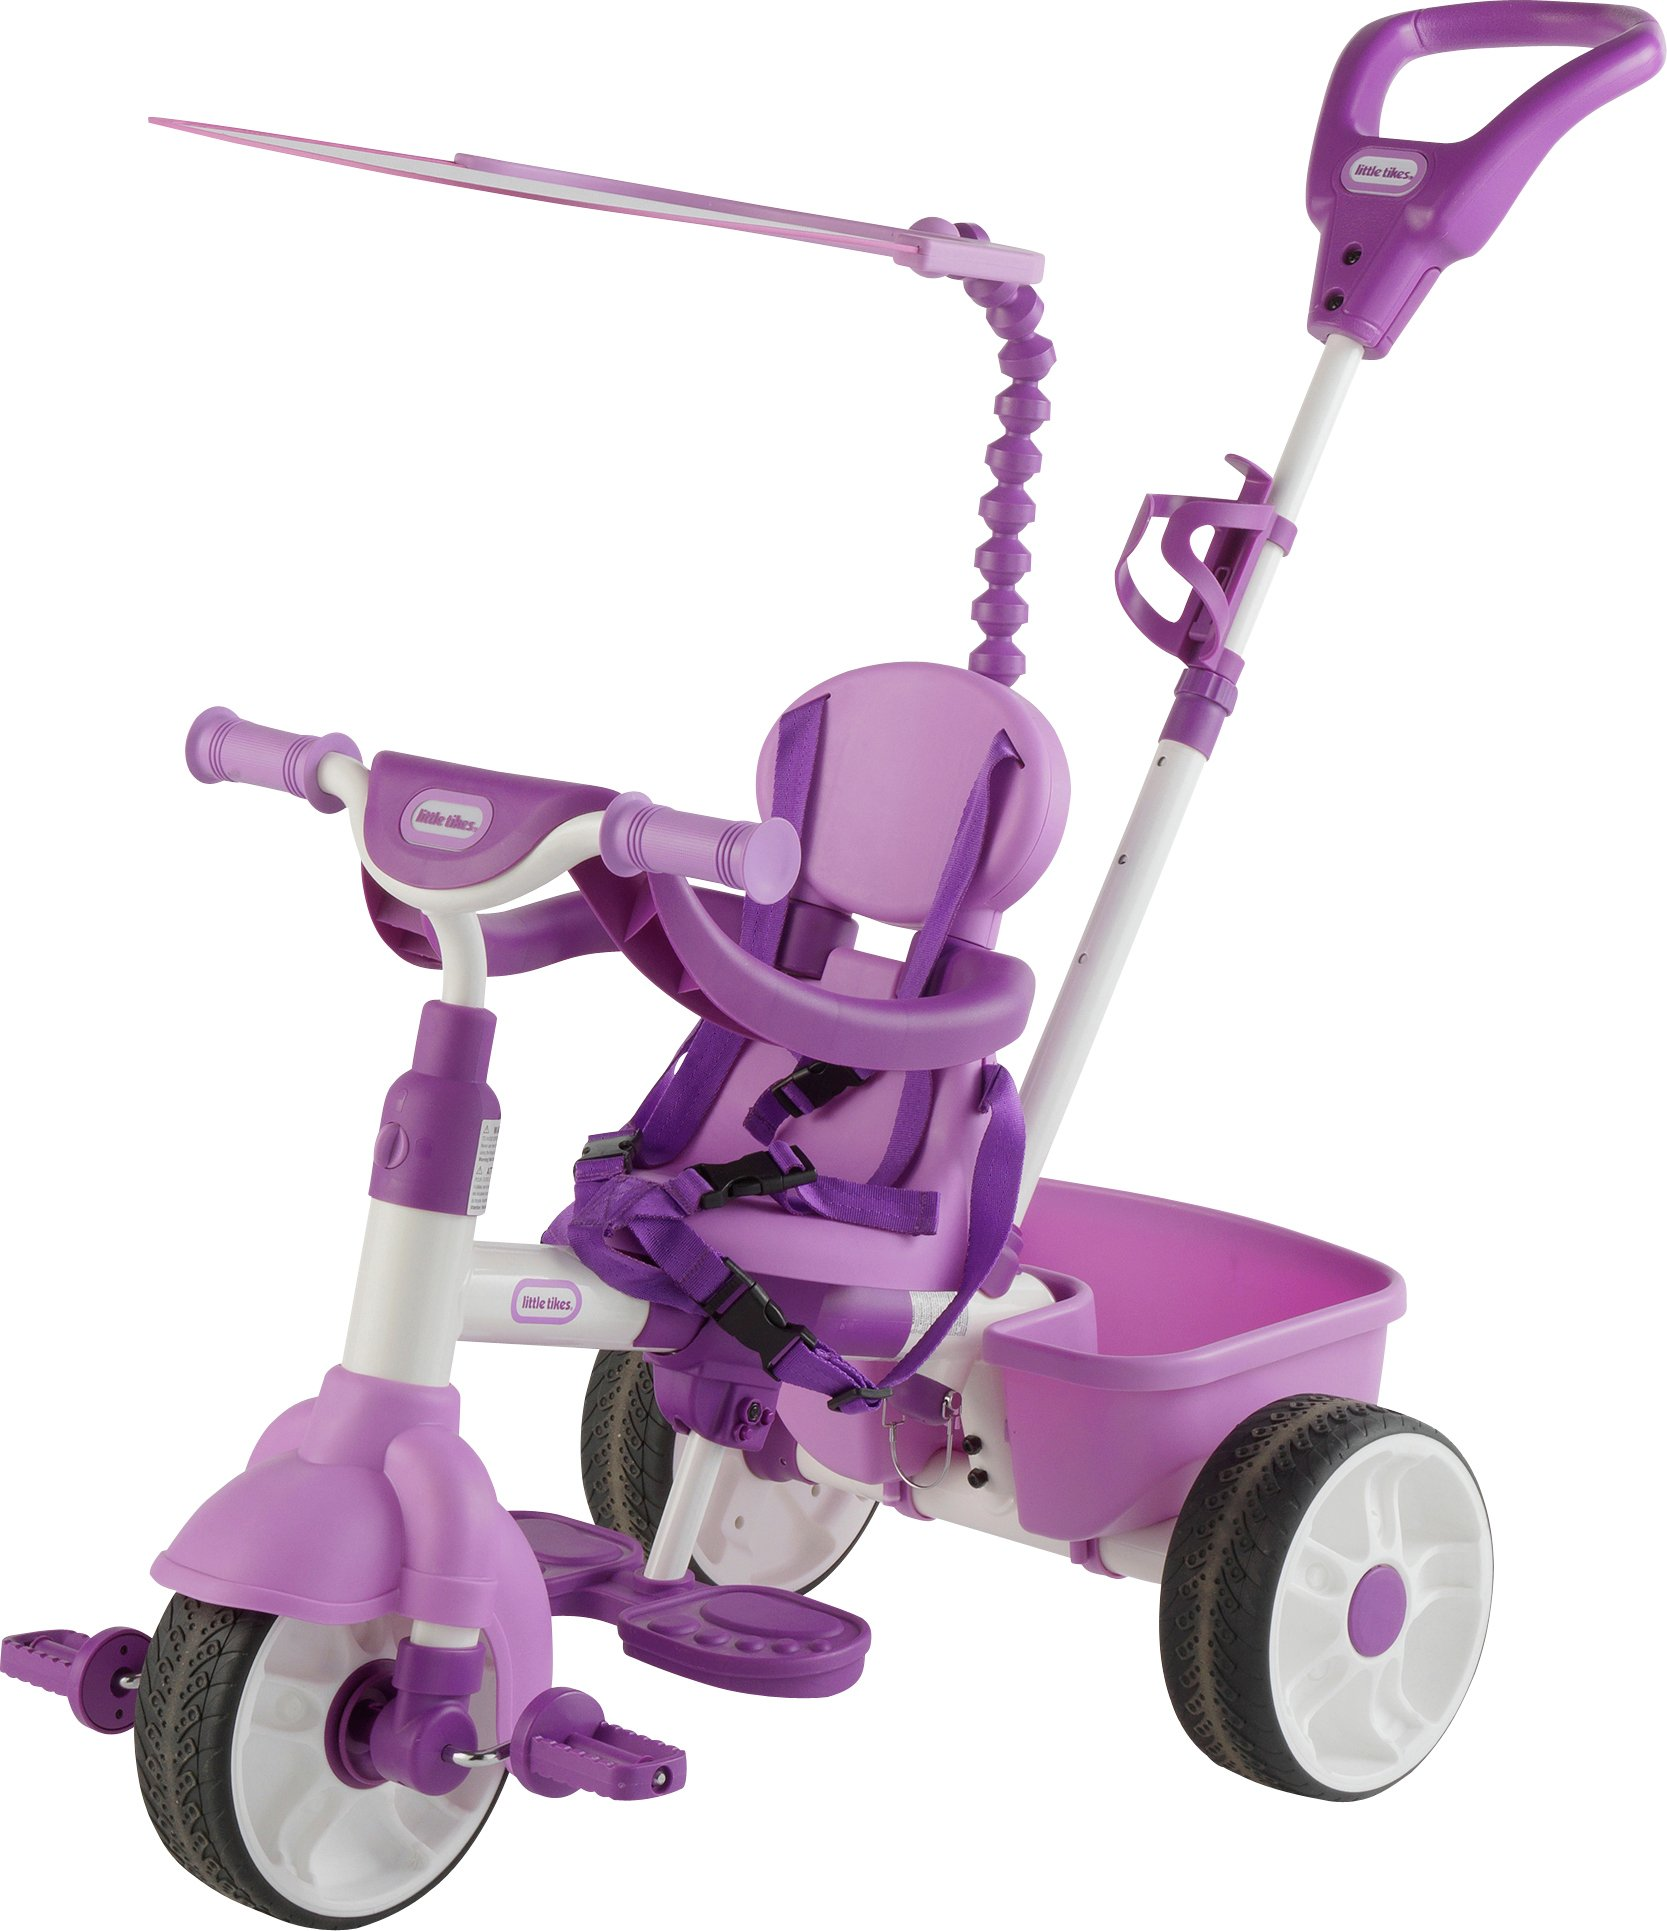 Little Tikes 4-in-1 Trike - Pink